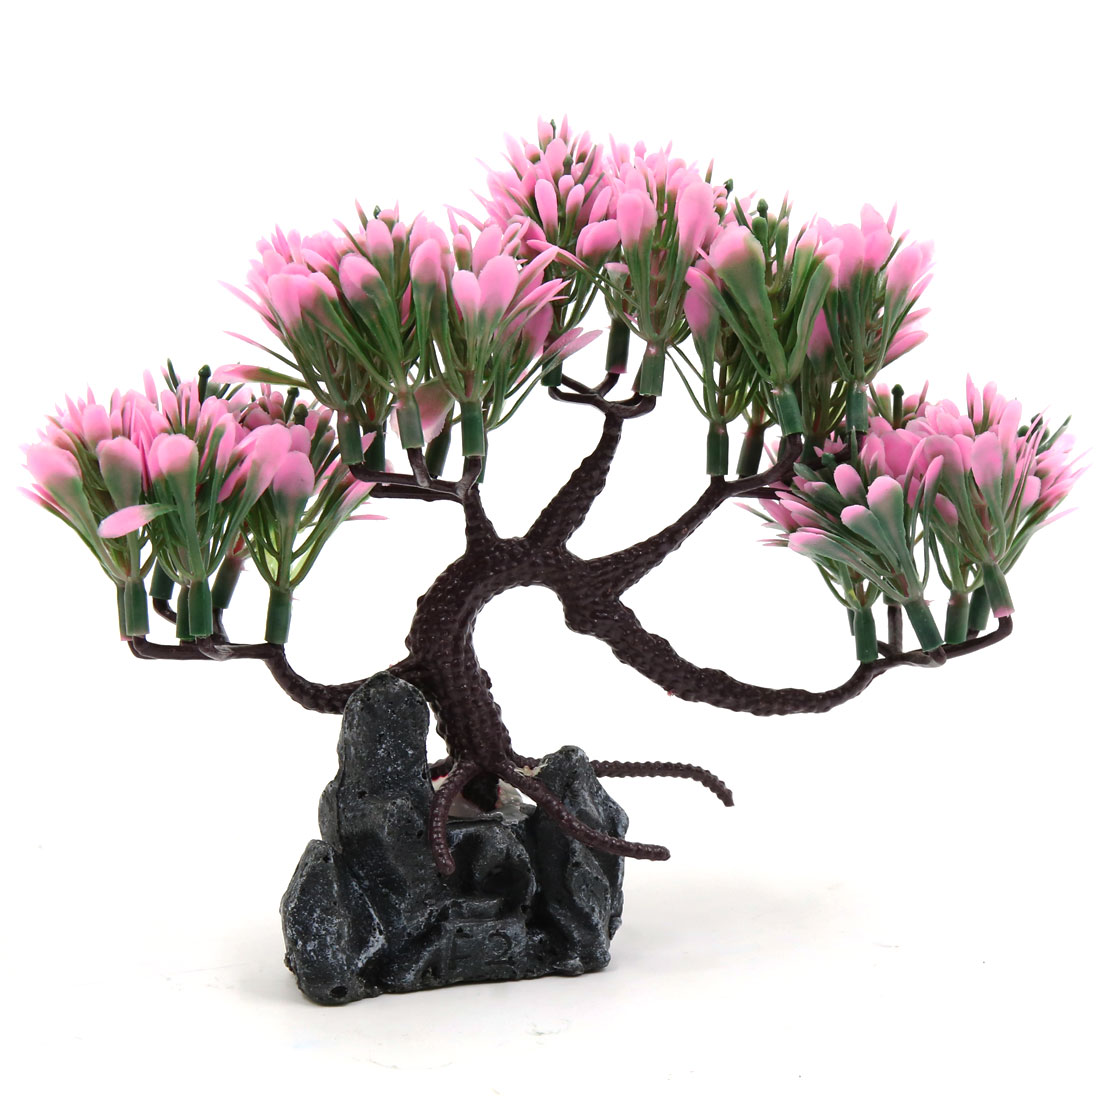 Aquarium Decorative Plastic Plant Aqua Landscape Ornament Home Decoration Pink